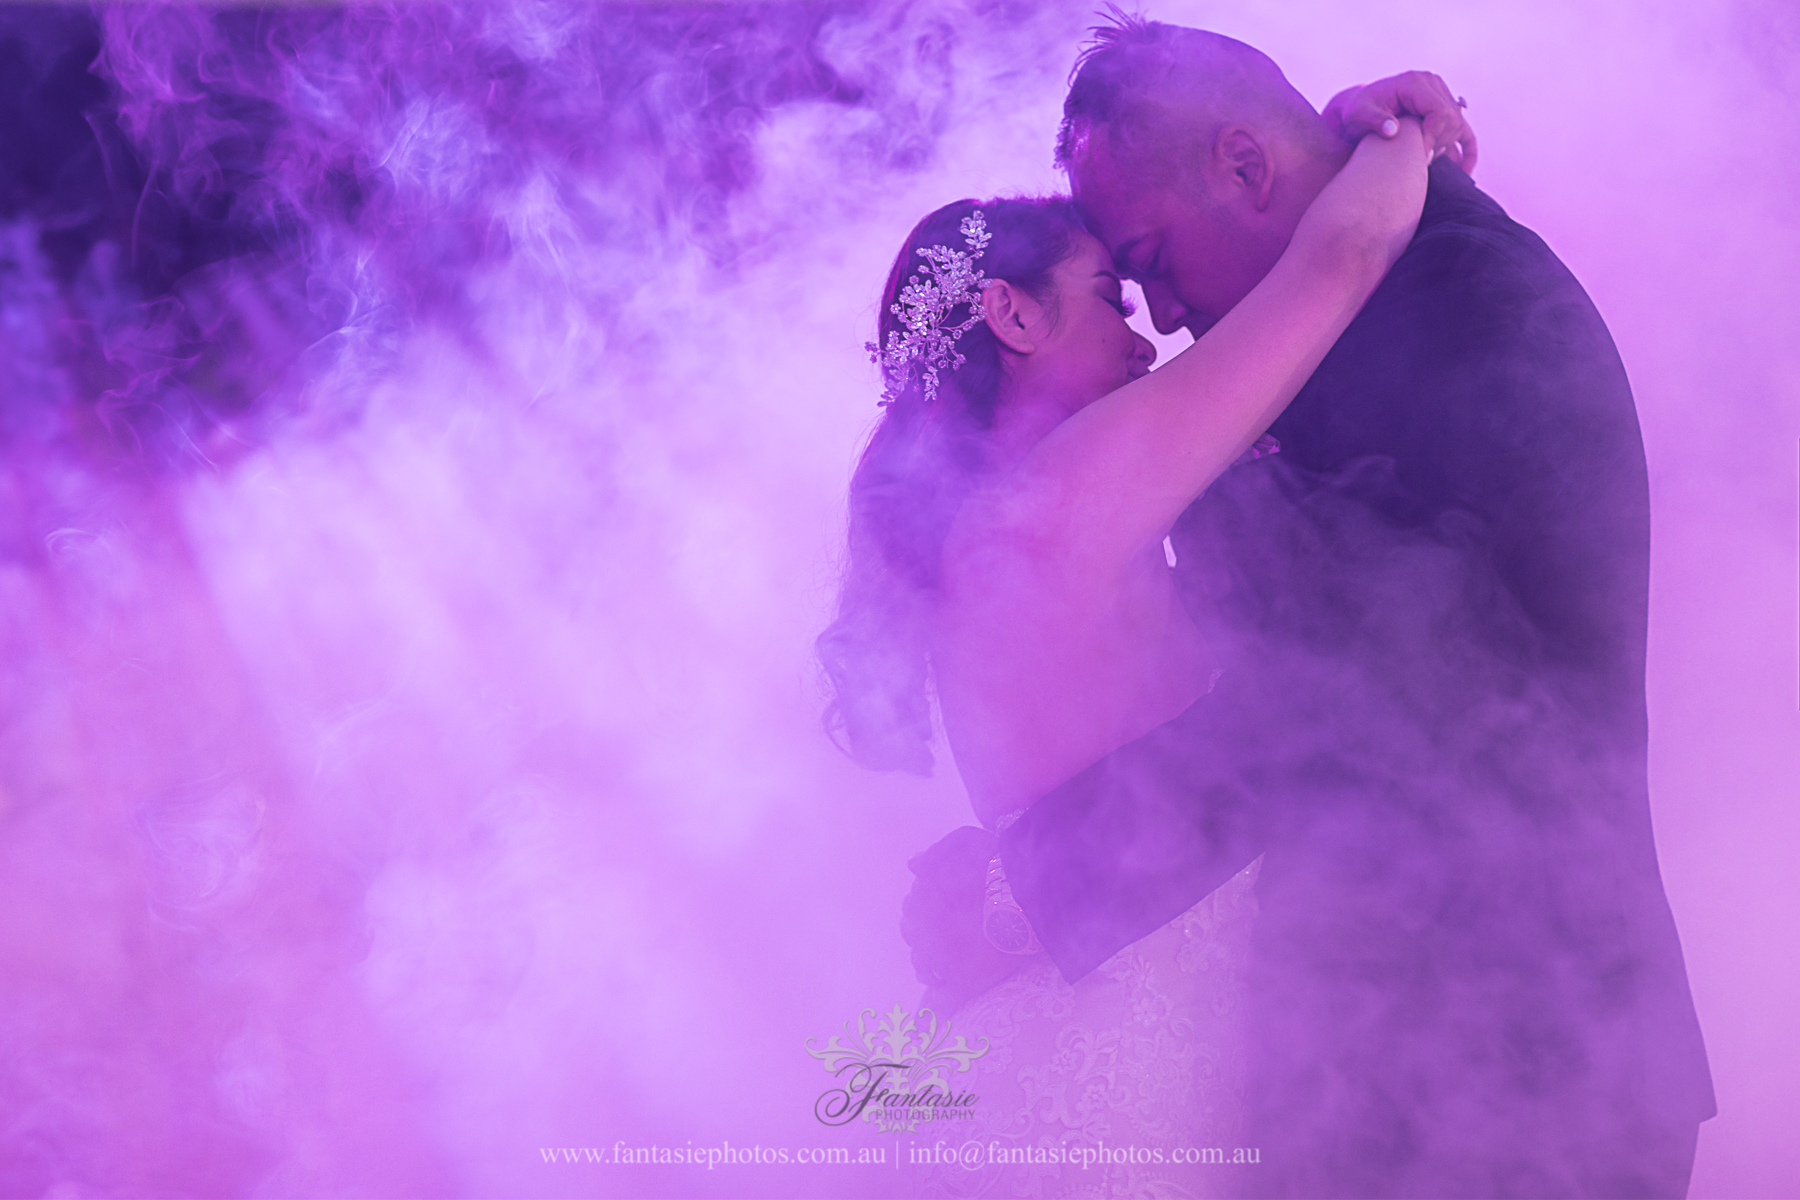 Wedding Photography Crystal Palace Canley Heights | Fantasie Photography